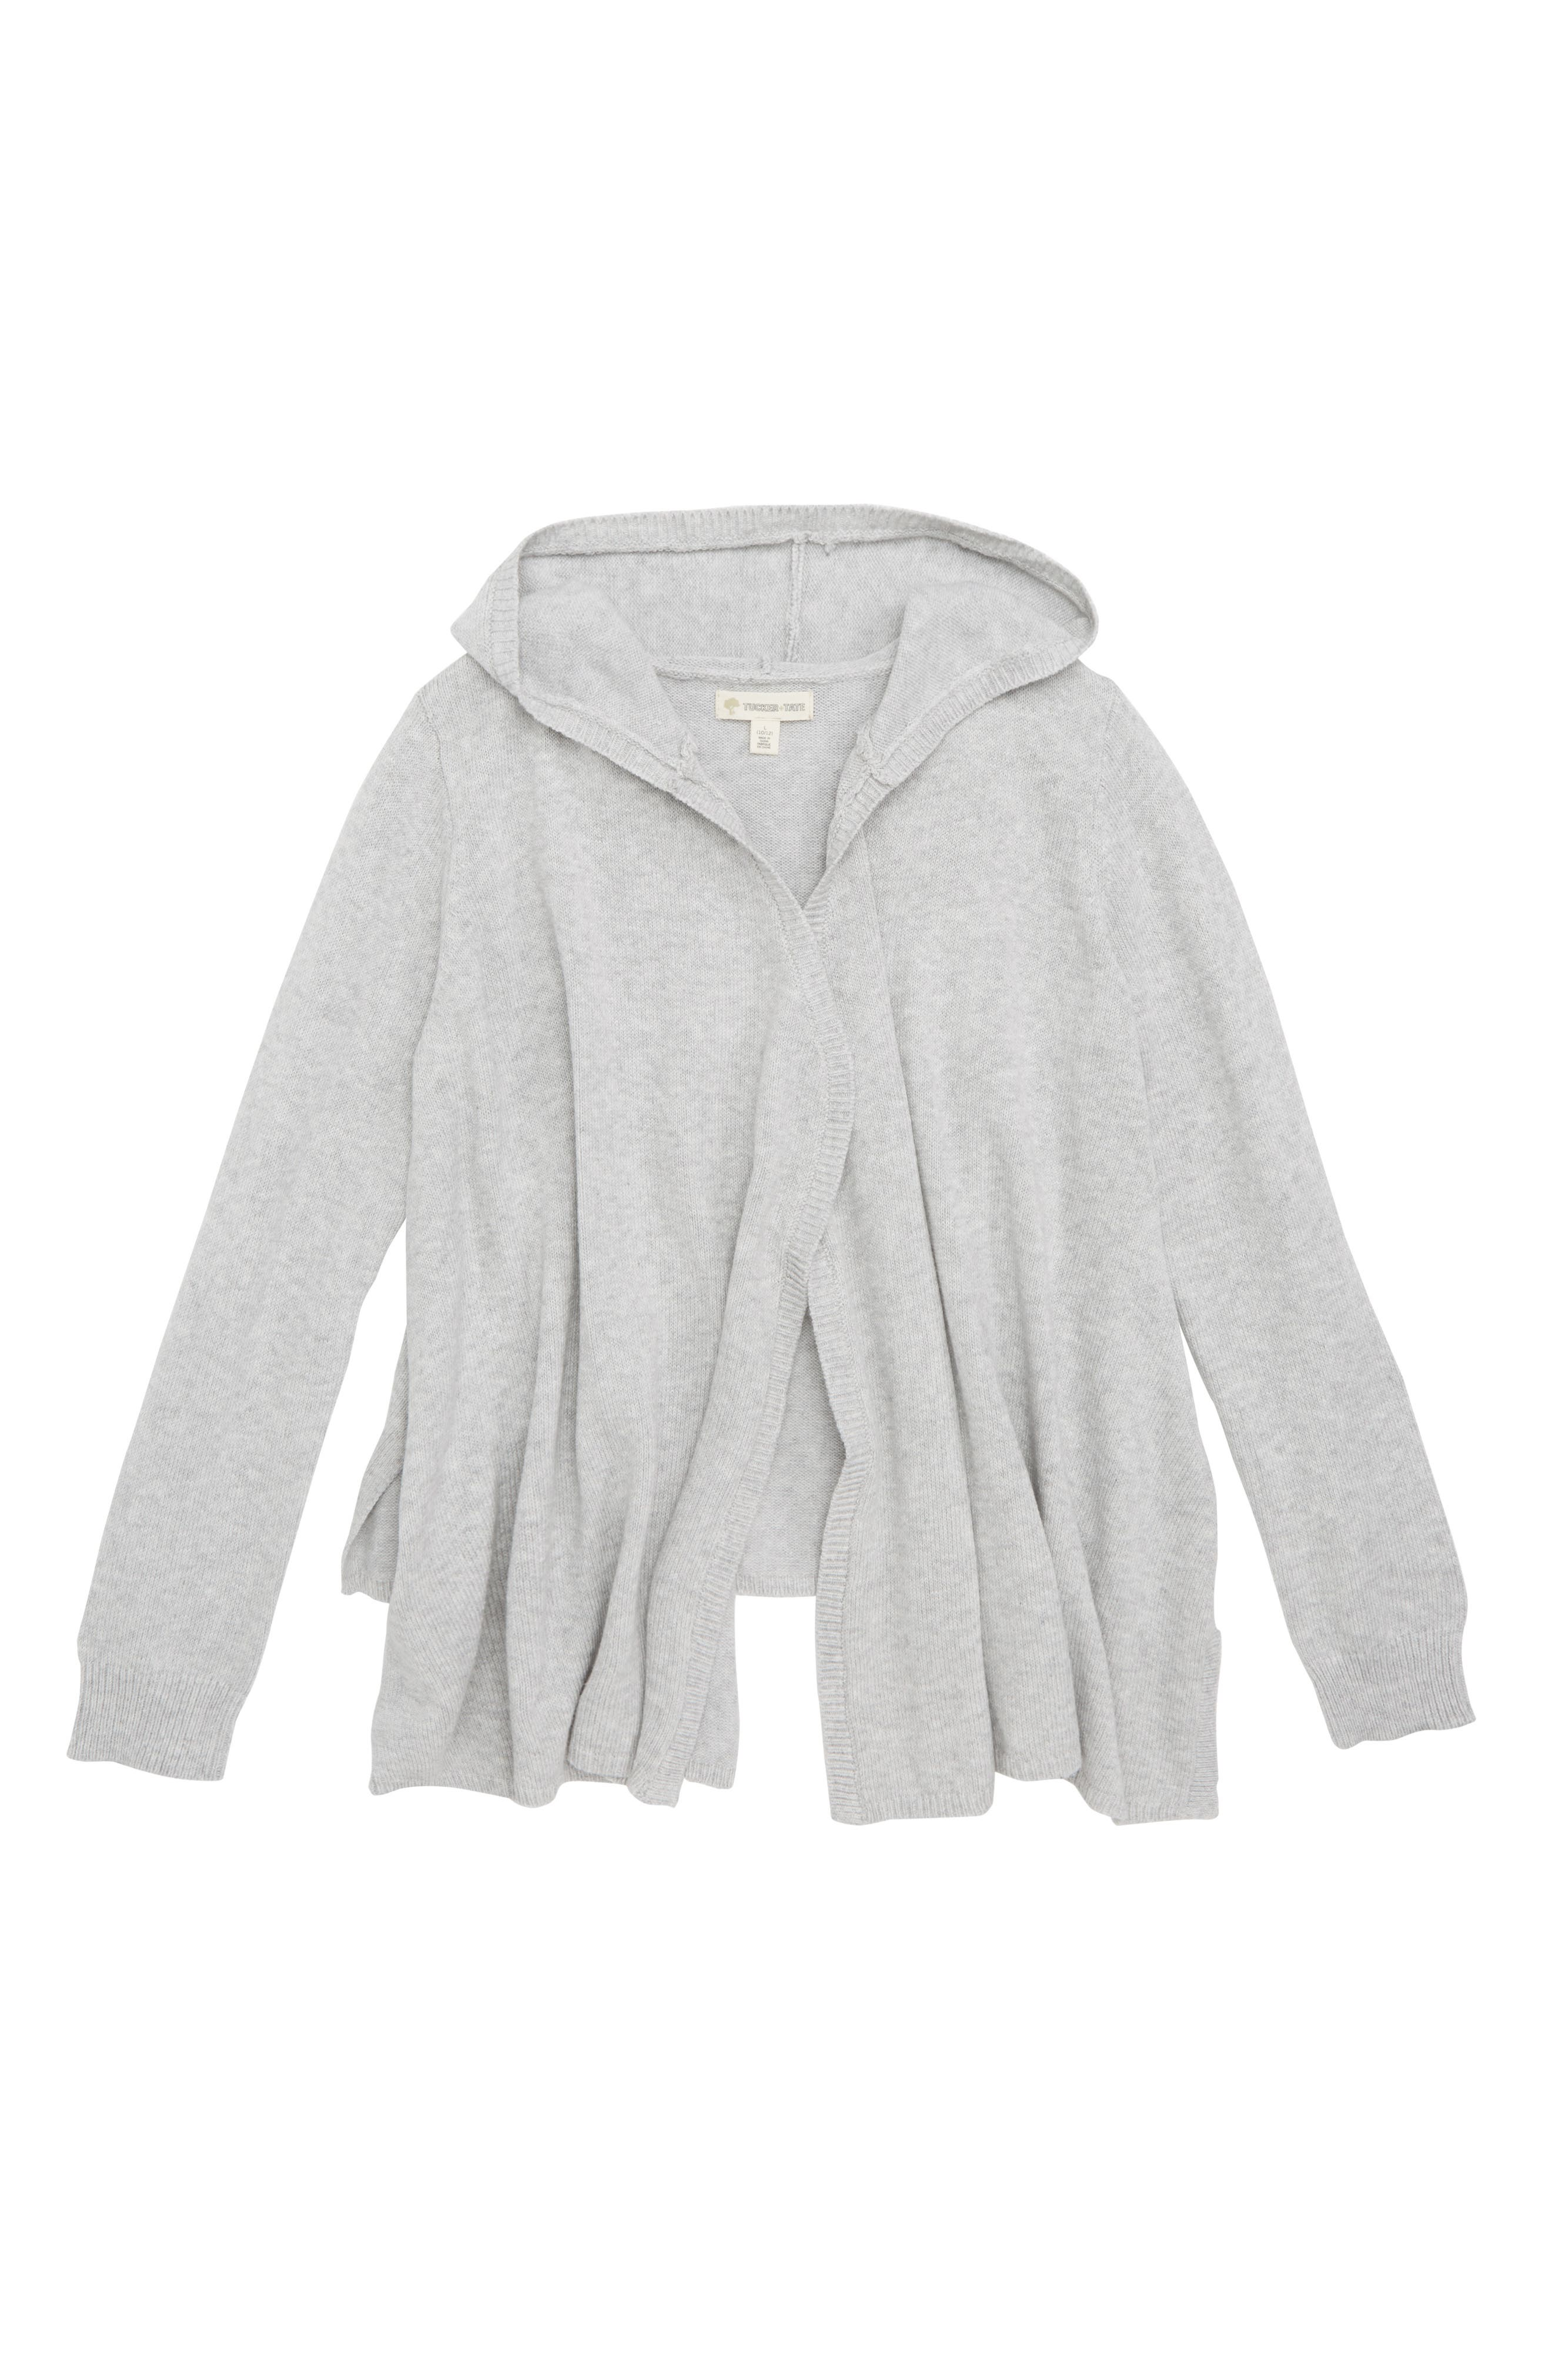 Hooded Cardigan,                         Main,                         color, GREY ASH HEATHER